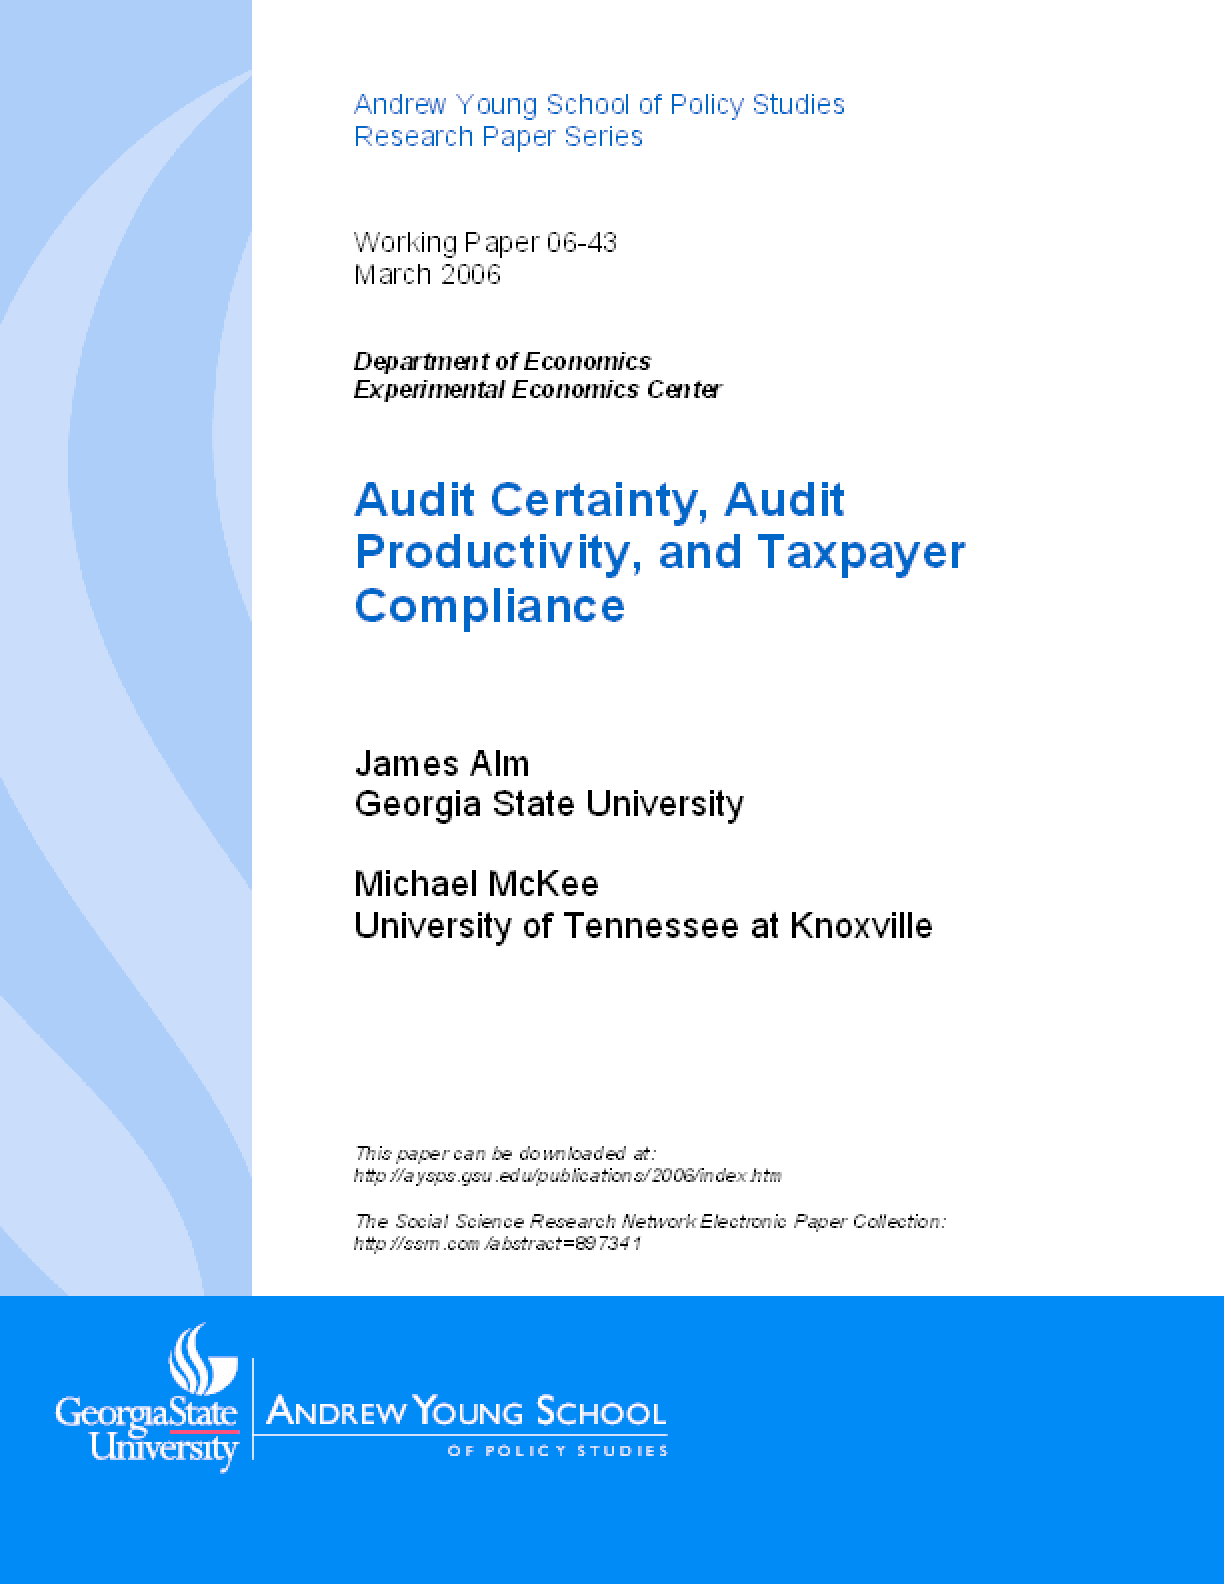 Audit Certainty, Audit Productivity, and Taxpayer Compliance